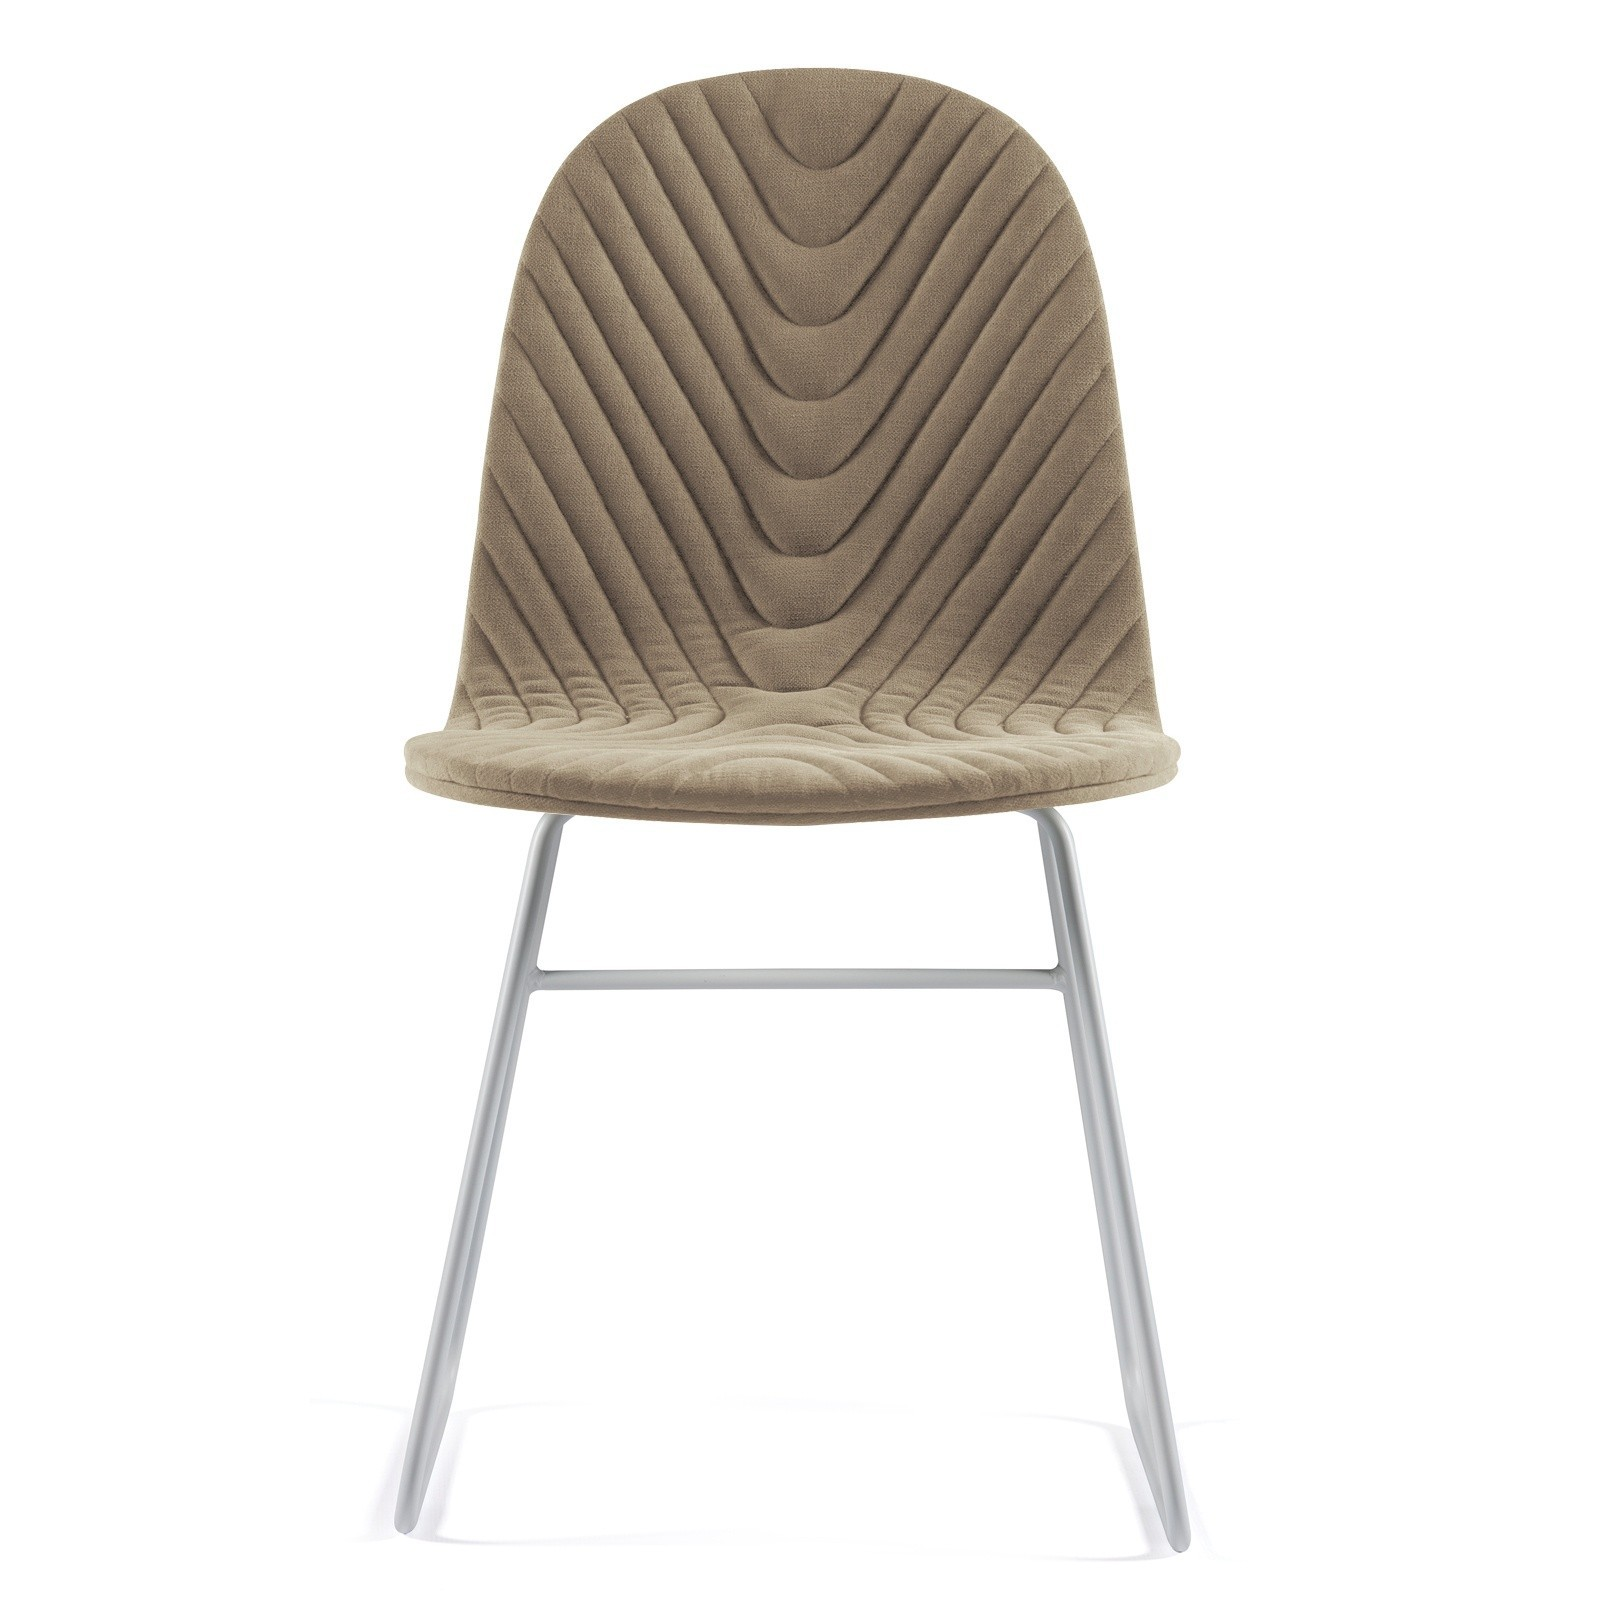 Mannequin chair - 02 - coffee